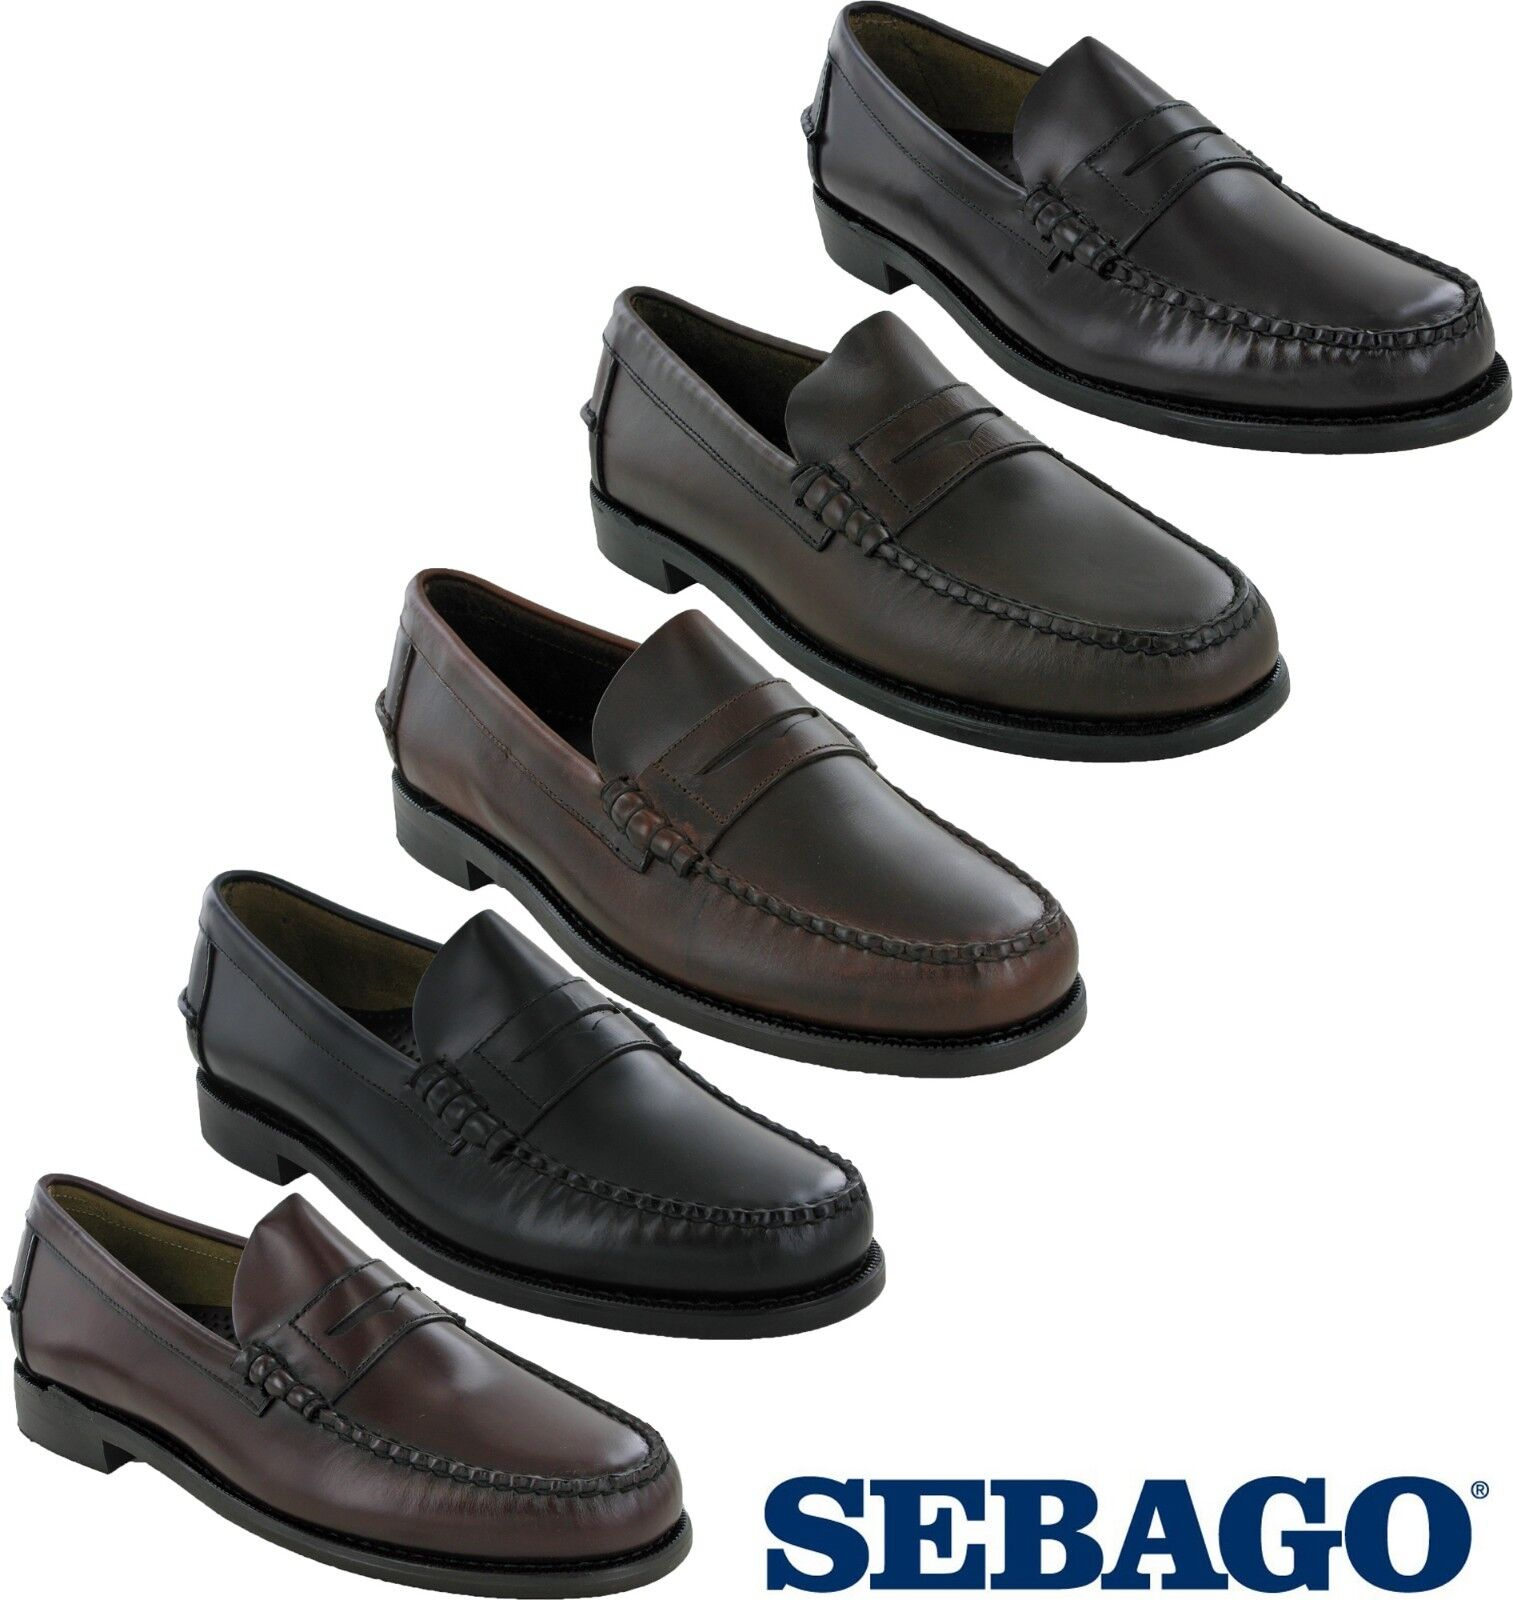 Sebago Classic Leather Mens Casual Formal Smart Slip On Loafer shoes UK5 - 15